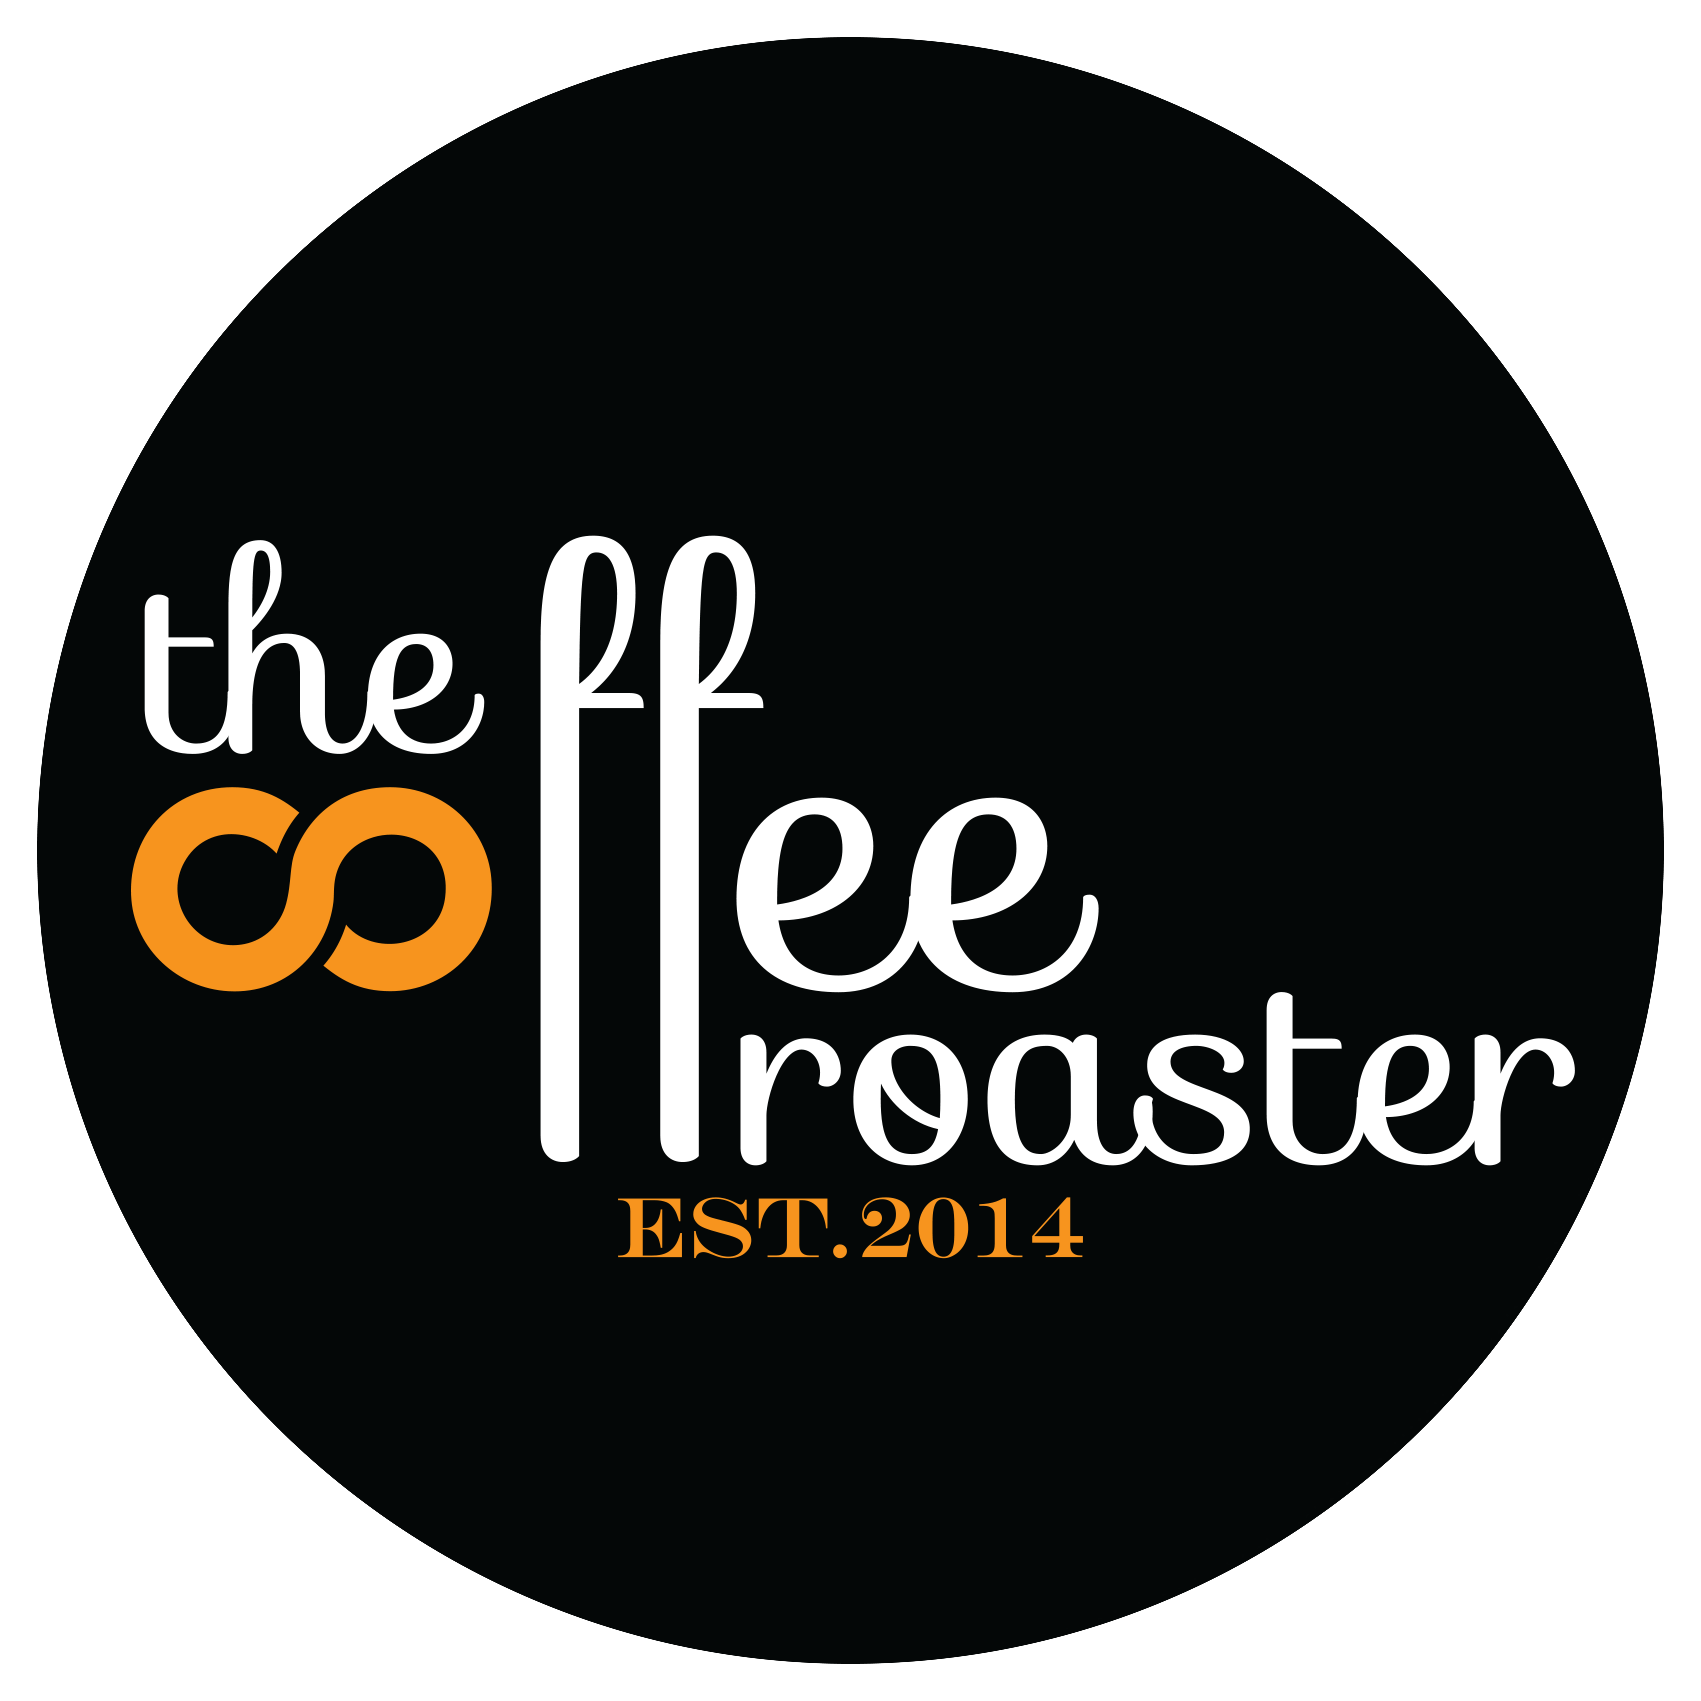 The Coffee Roaster Pte Ltd